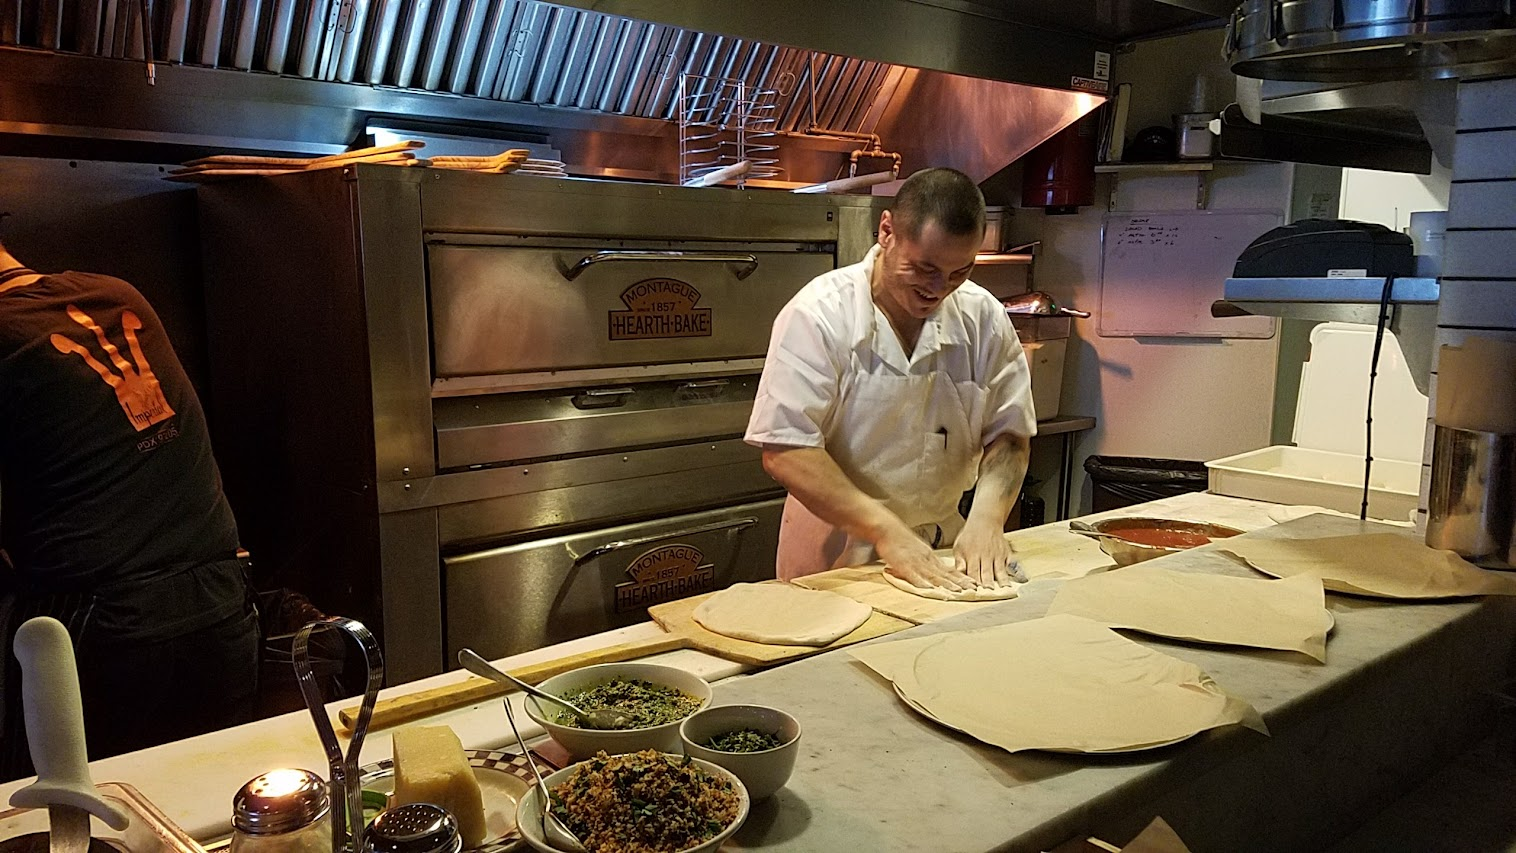 Inside Crown PDX in Portland, helmed by third generation pizzaiolo Vinny Manna.